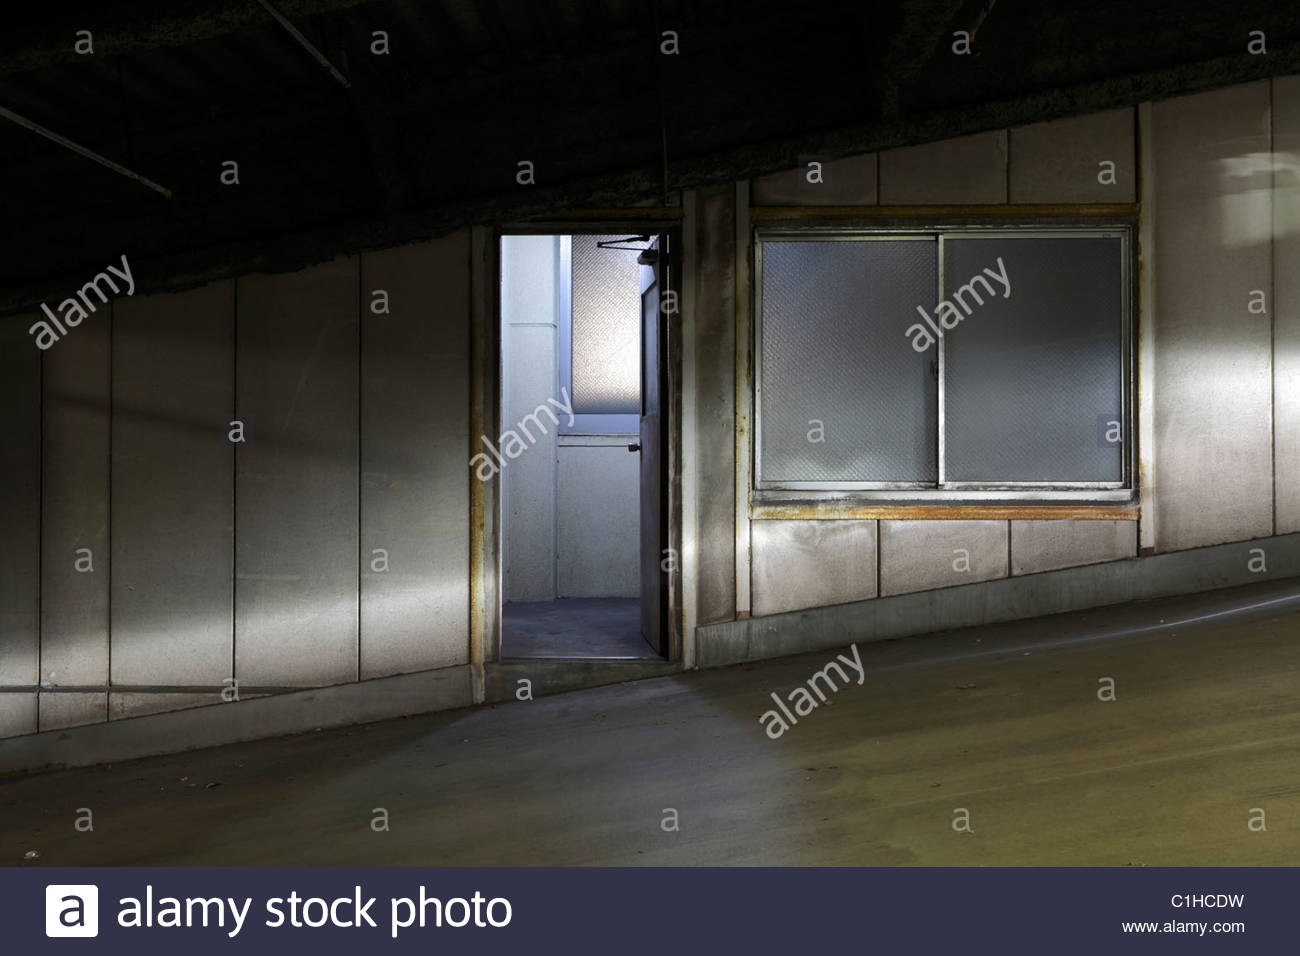 pedestrian door in a parking garage with head lights from a car - Stock Image